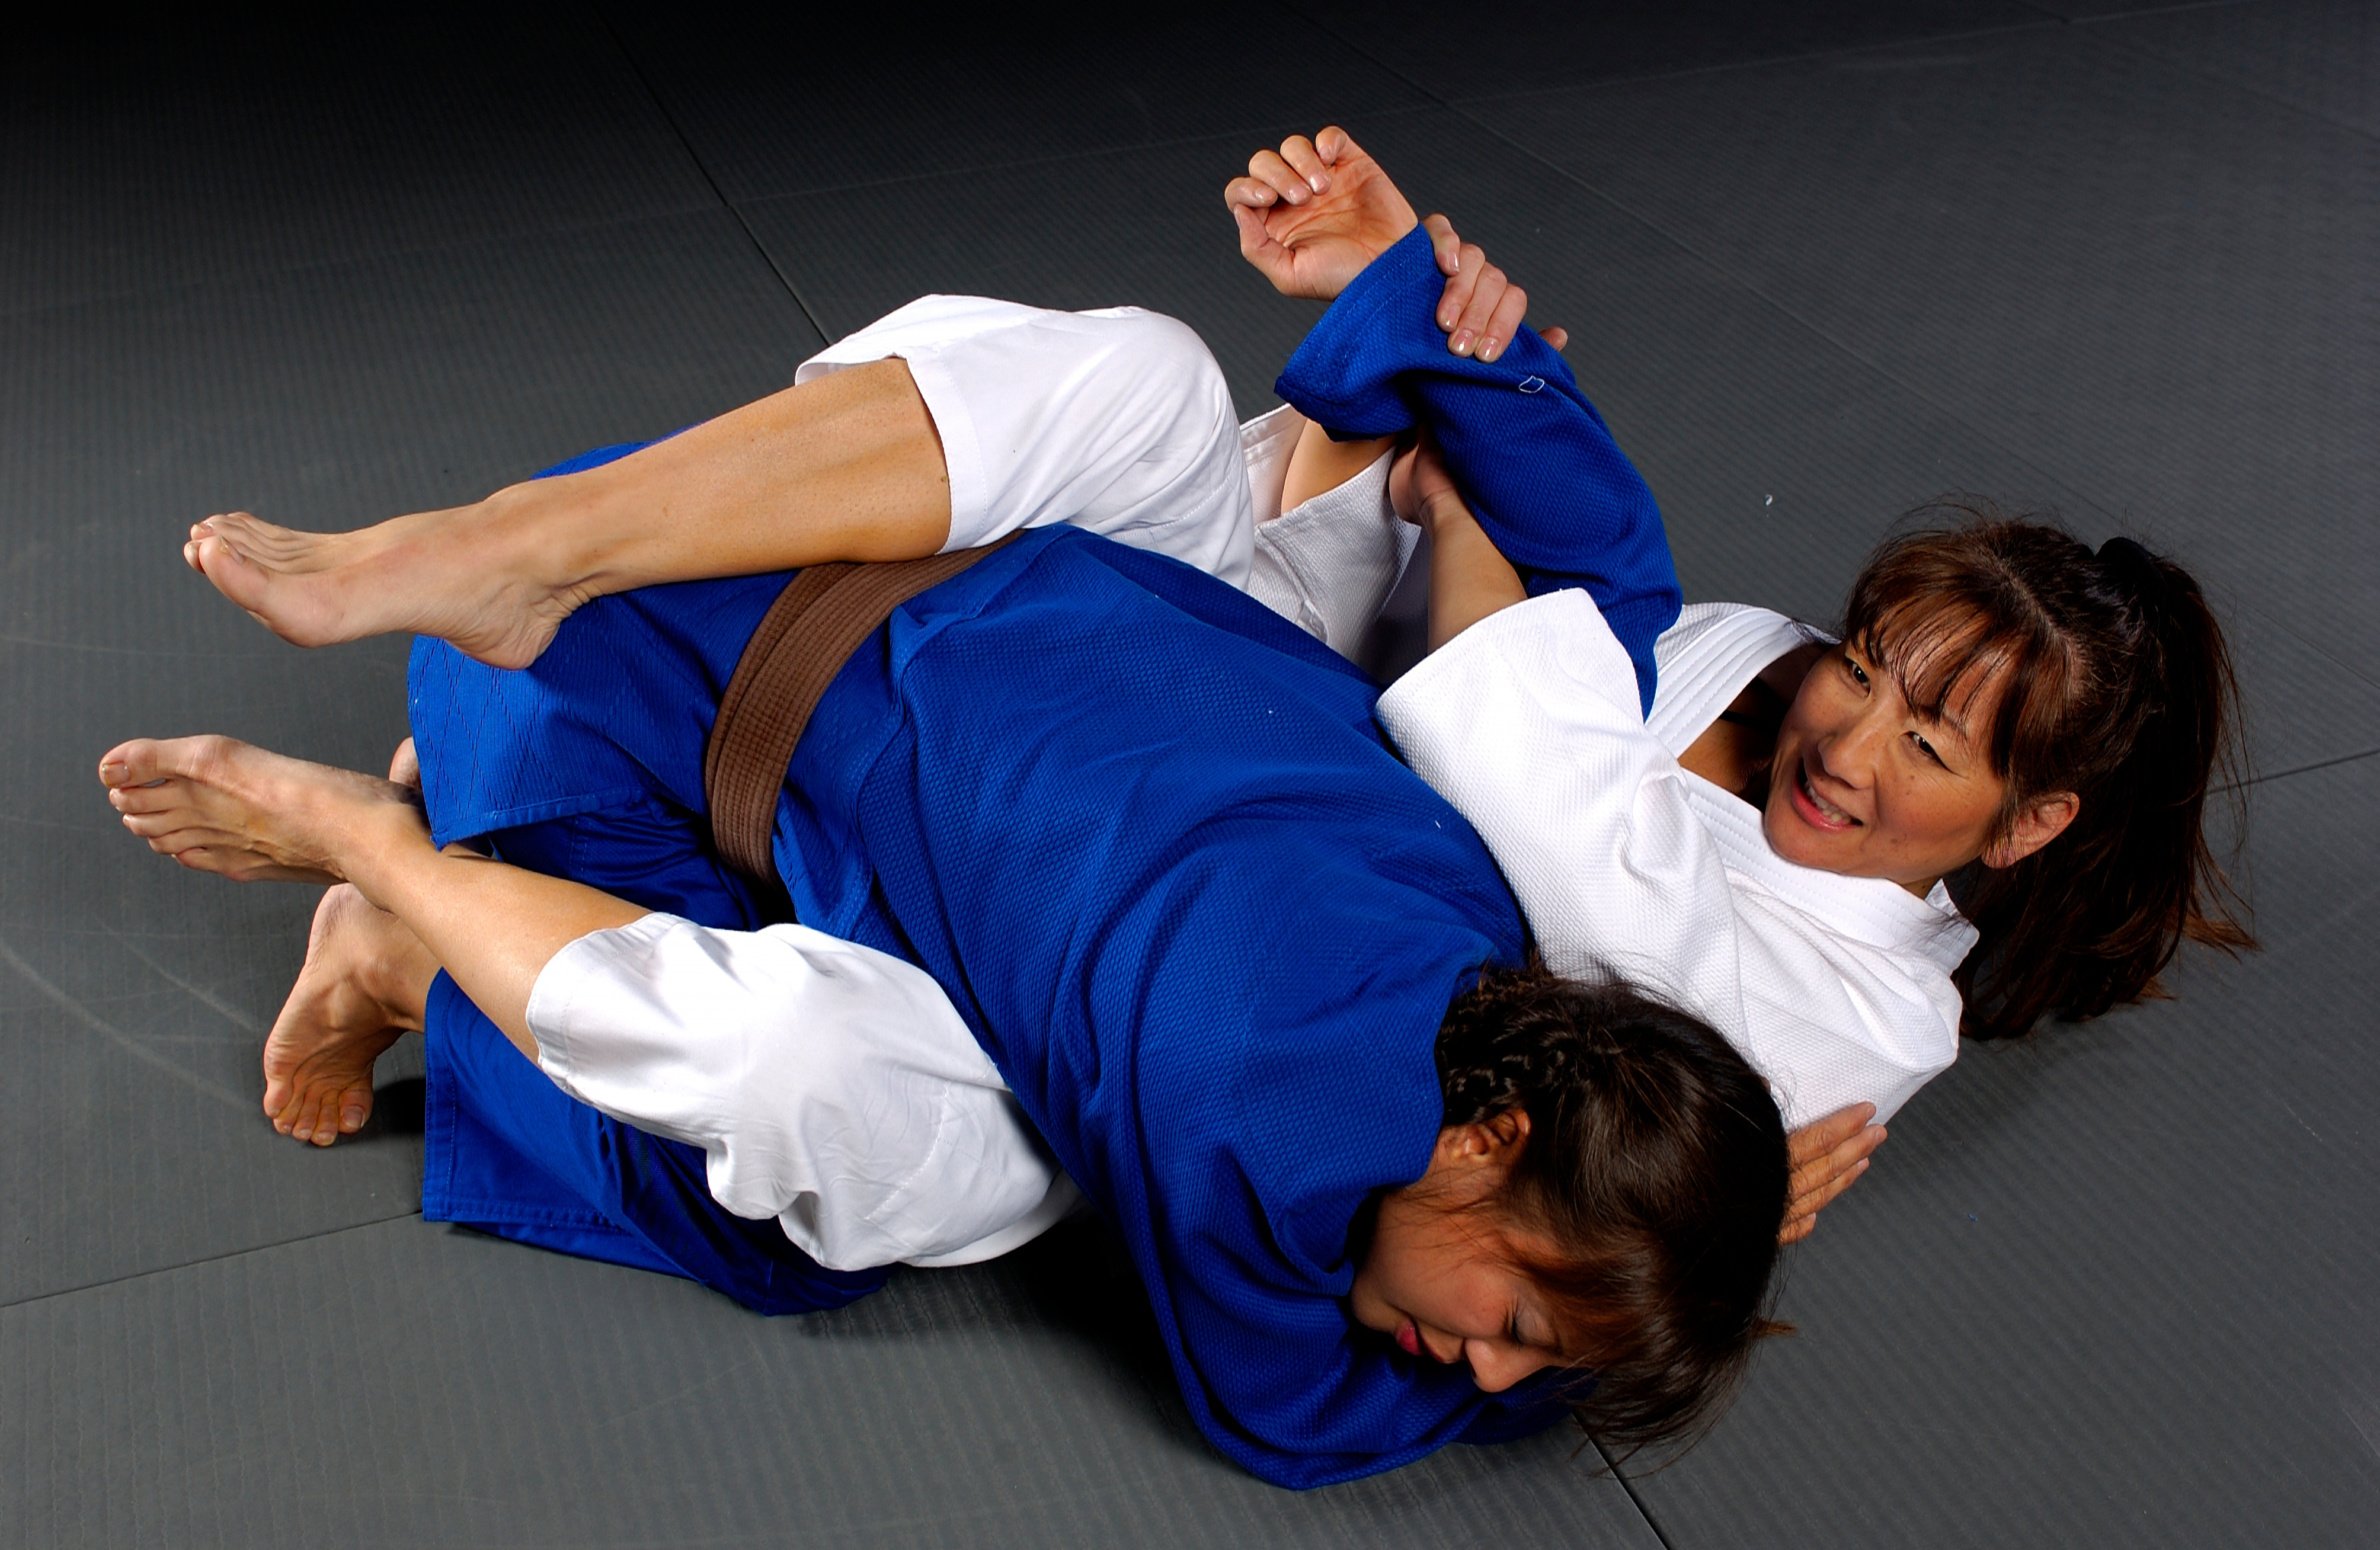 Jiu jitsu is a grappling art that doesn't have punches or kicks.